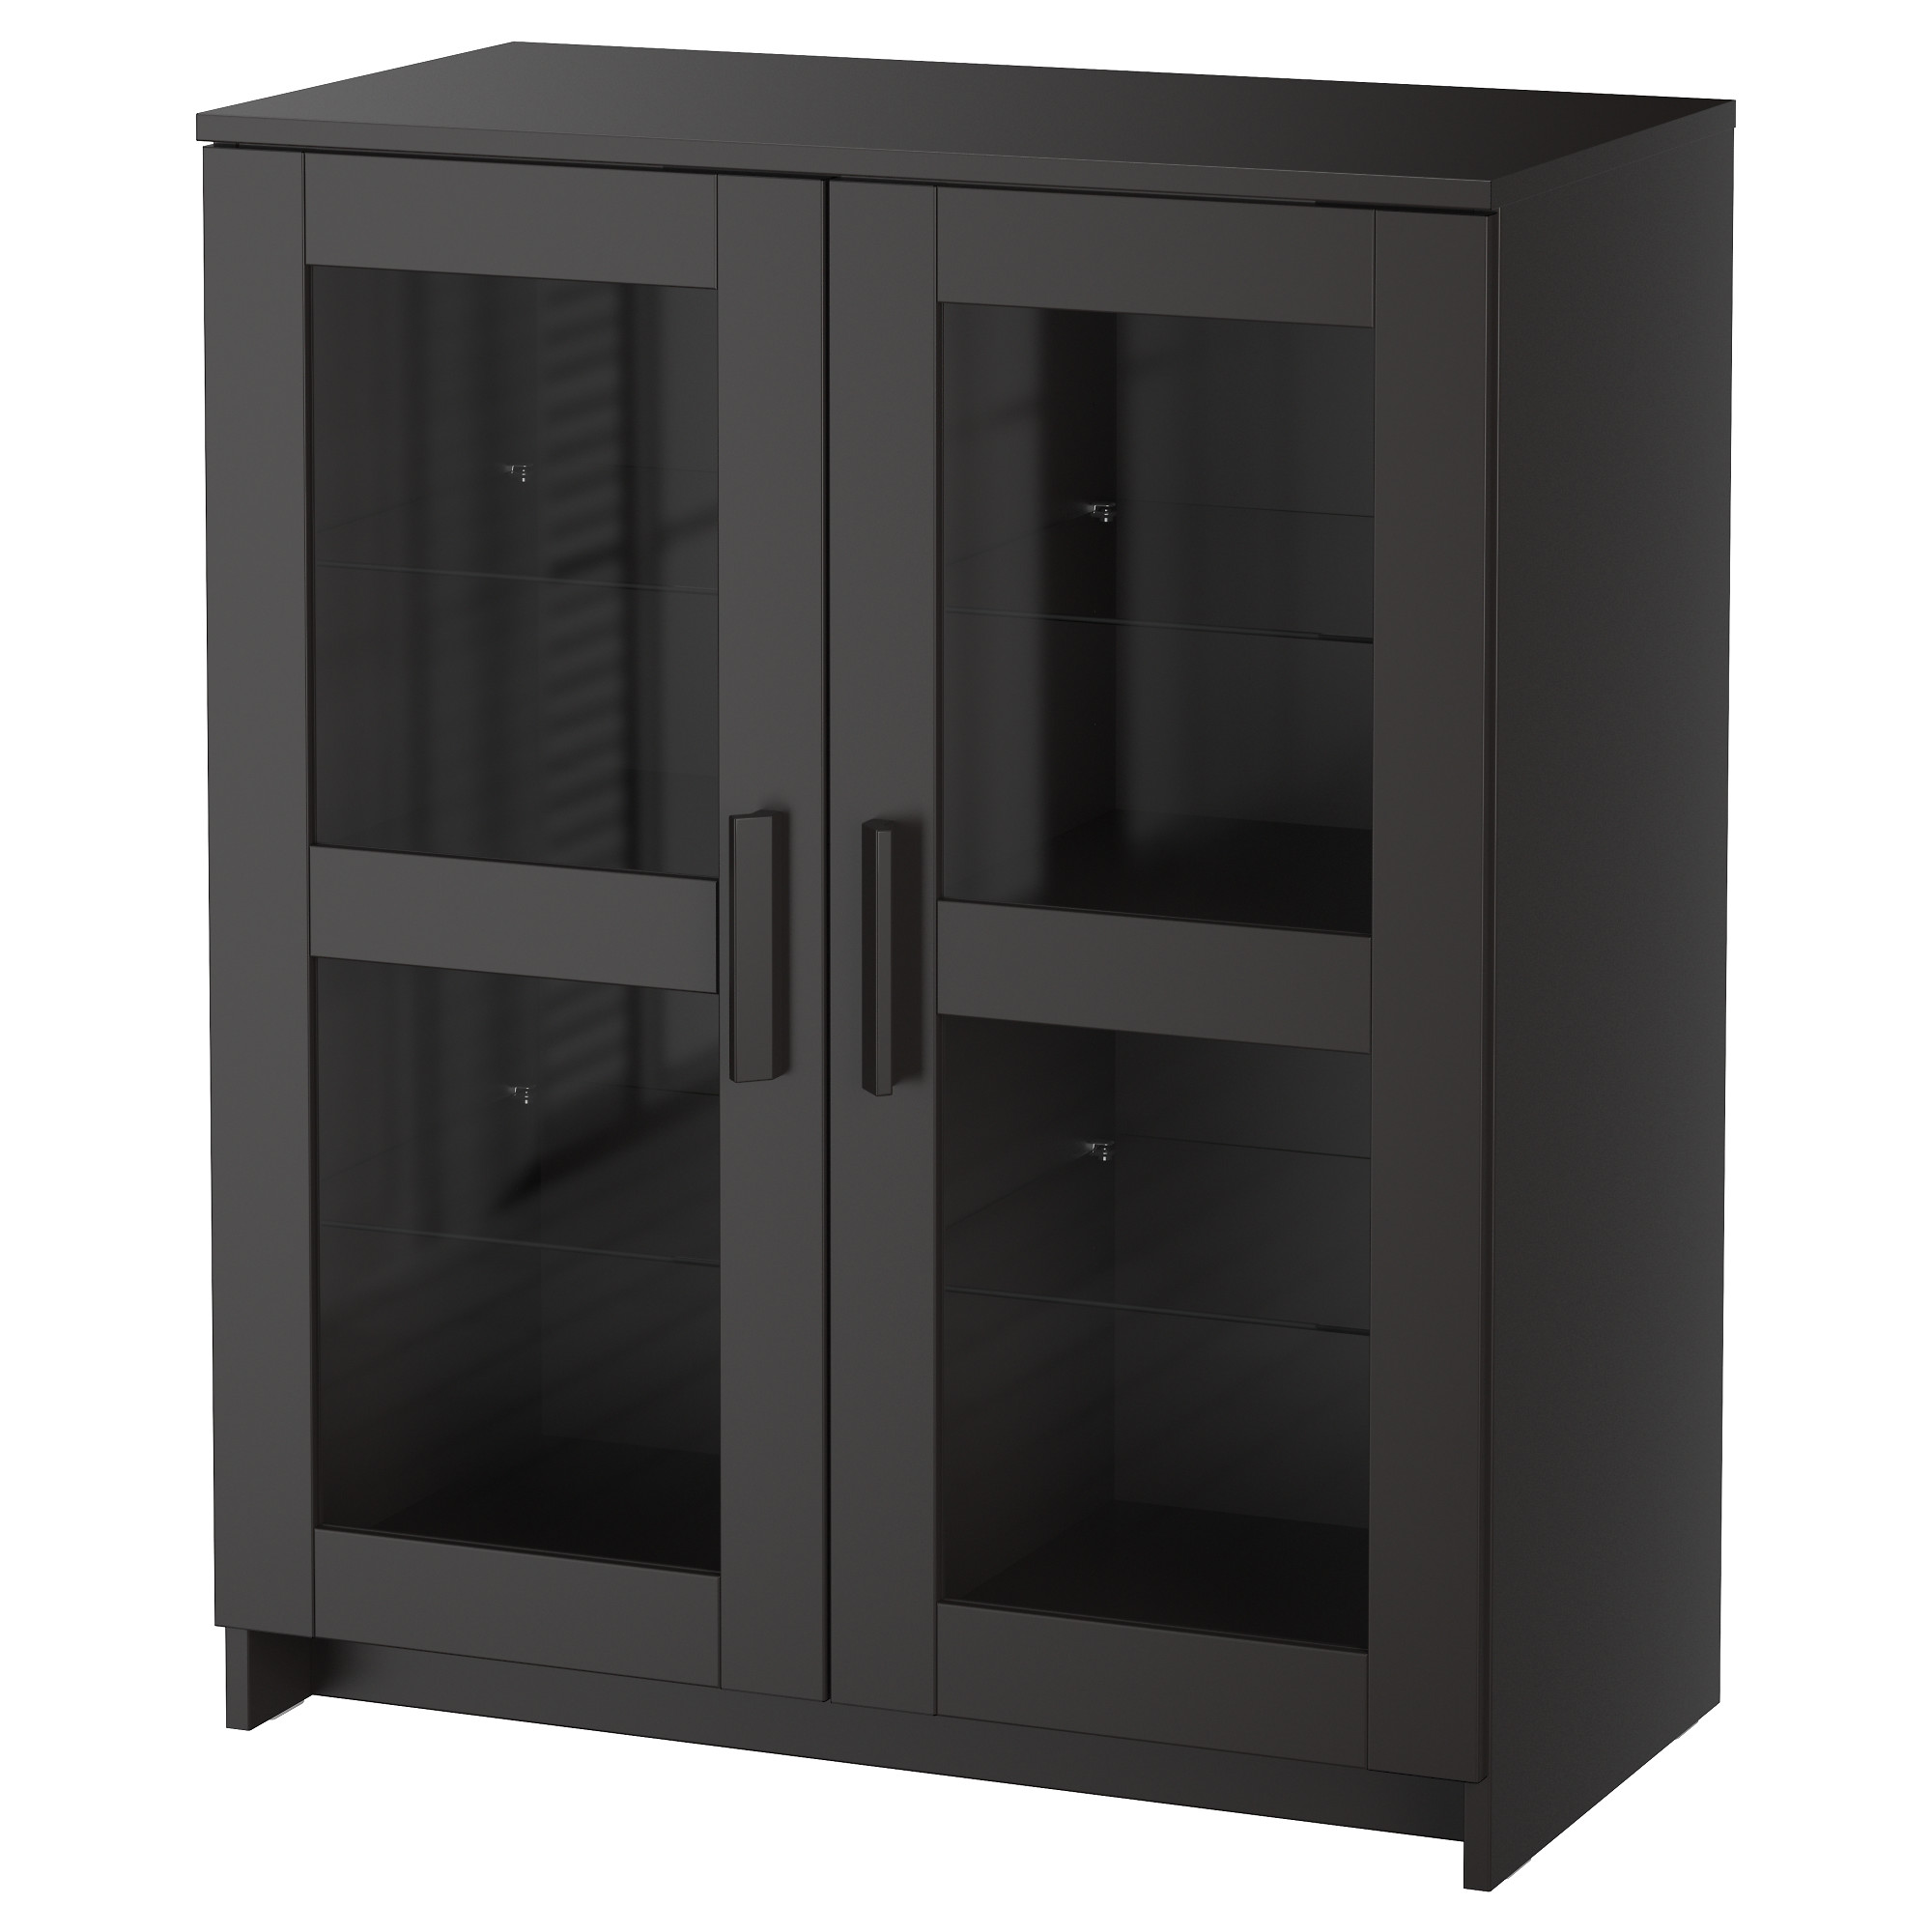 schrank 25 cm tief cool wei cm tief alburga with schrank 25 cm tief best flash mini with. Black Bedroom Furniture Sets. Home Design Ideas